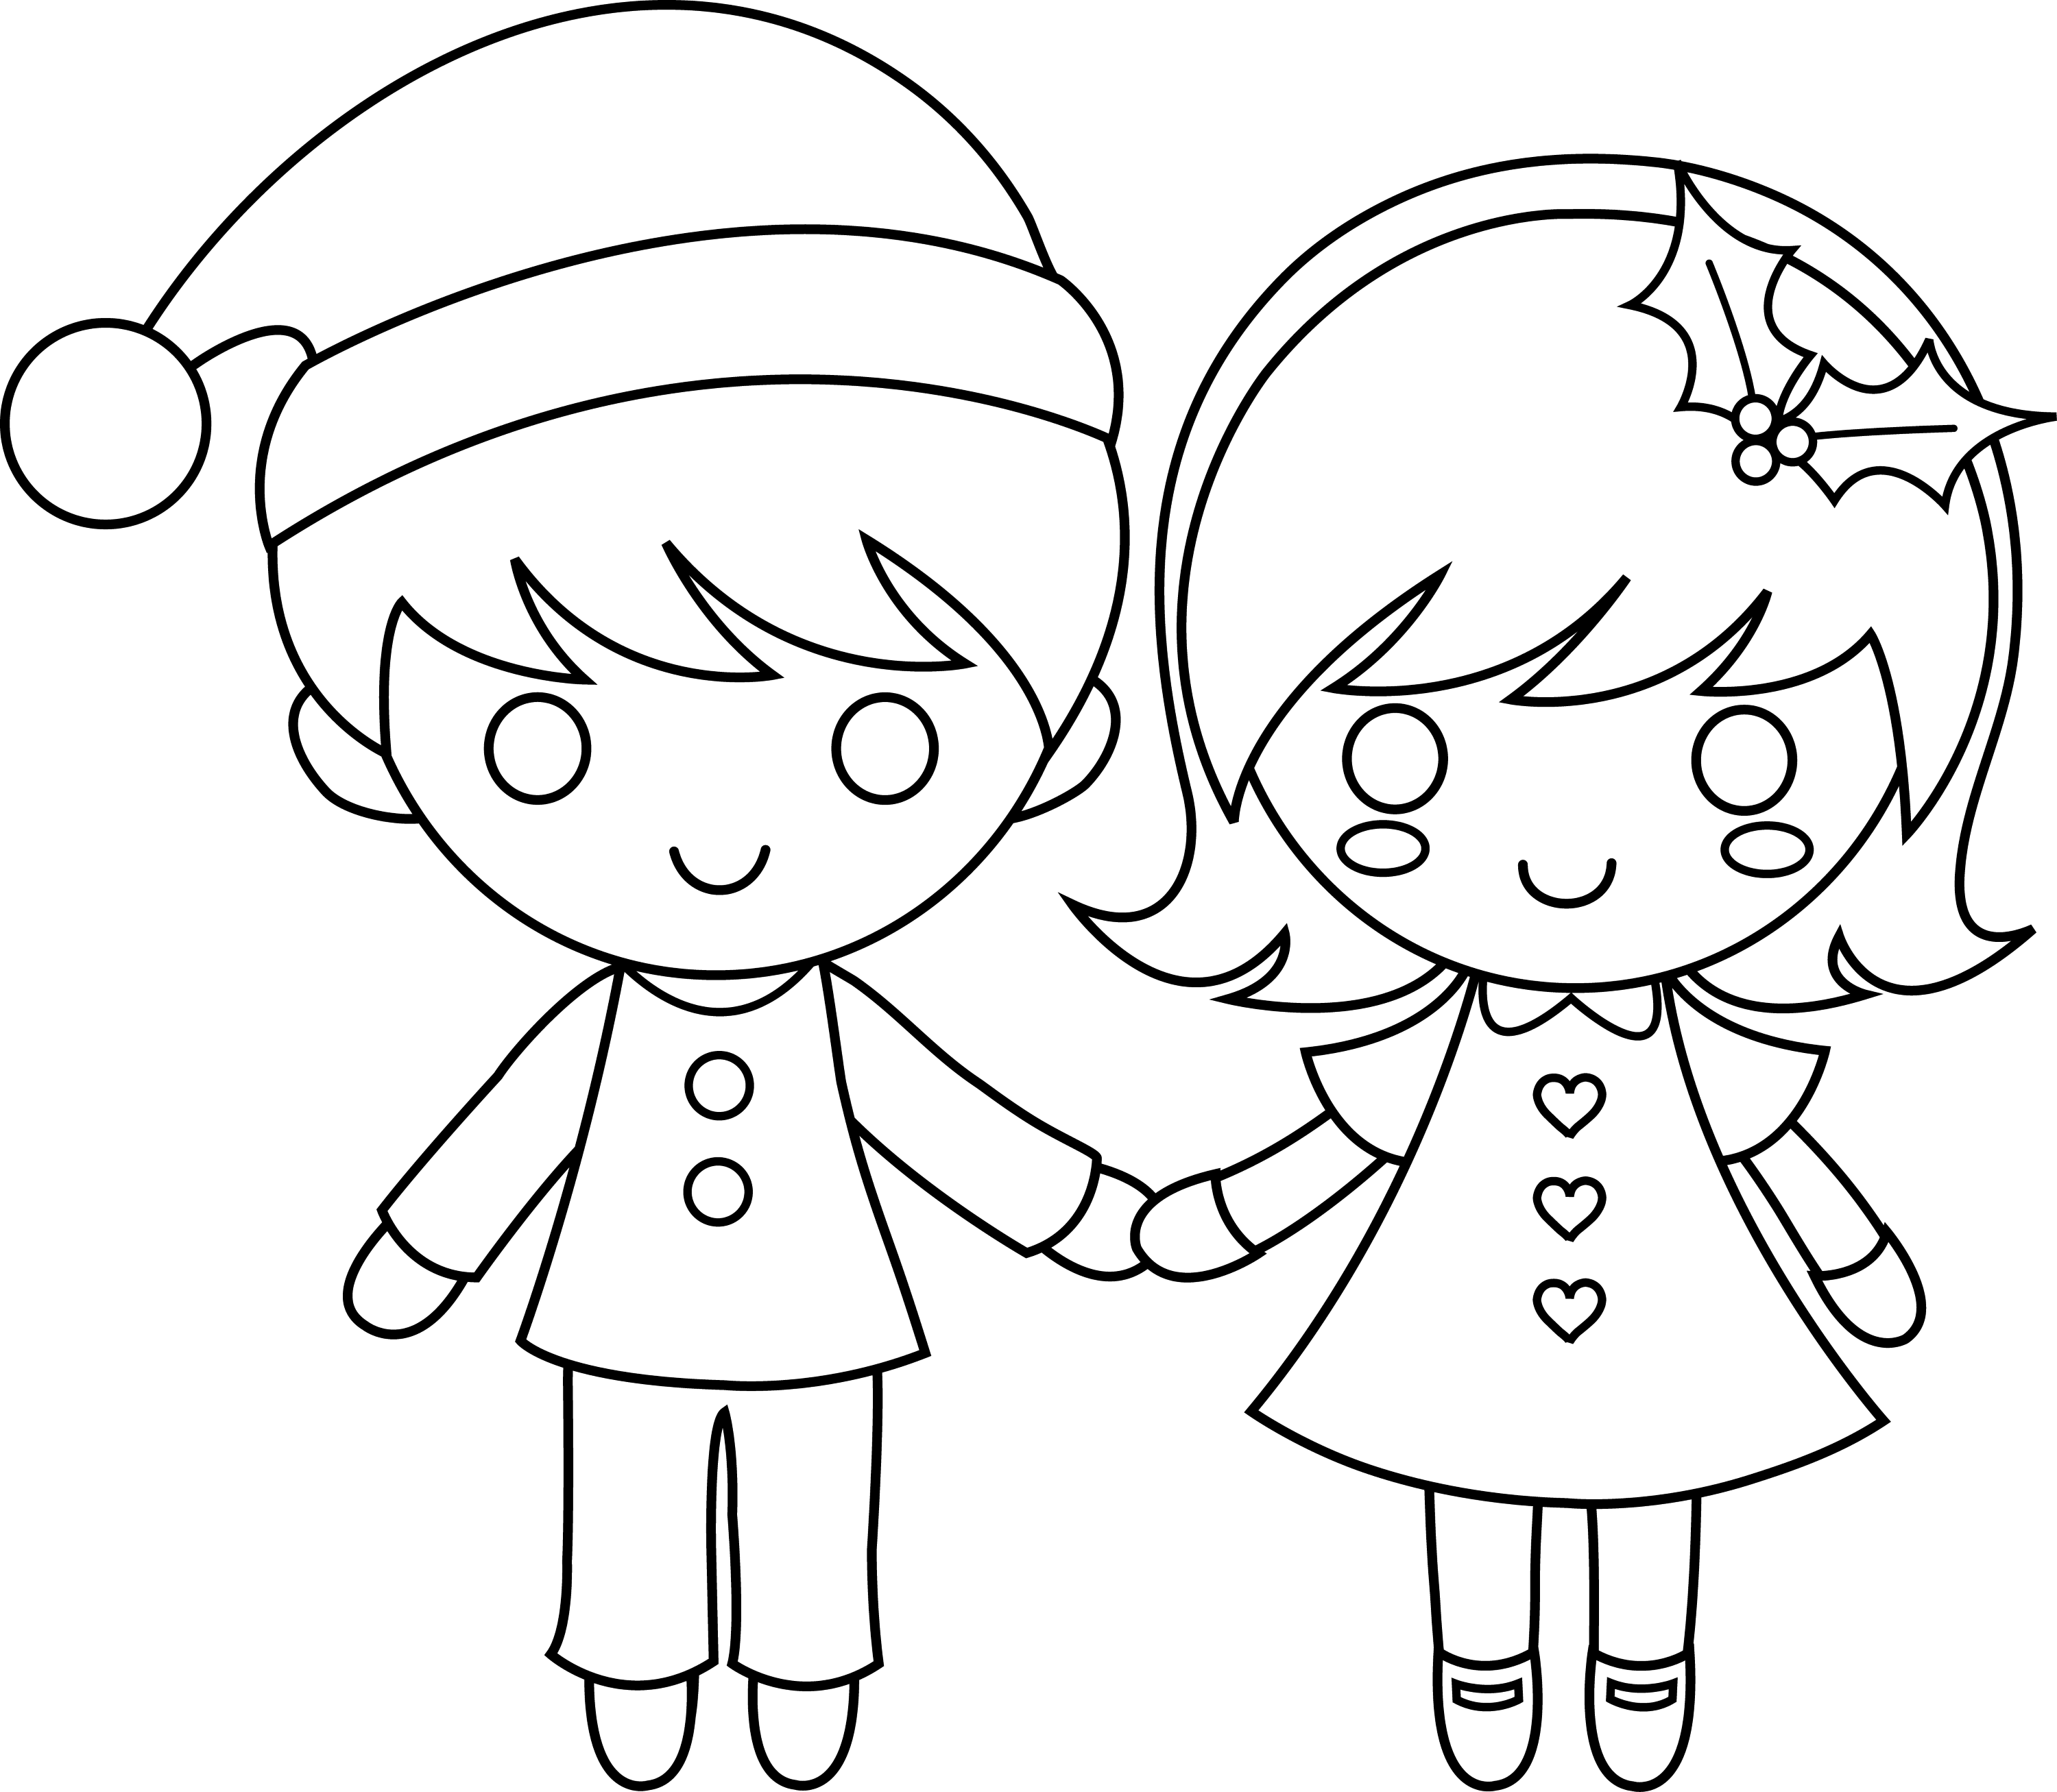 Line Drawing For Kids : Christmas kids line art free clip